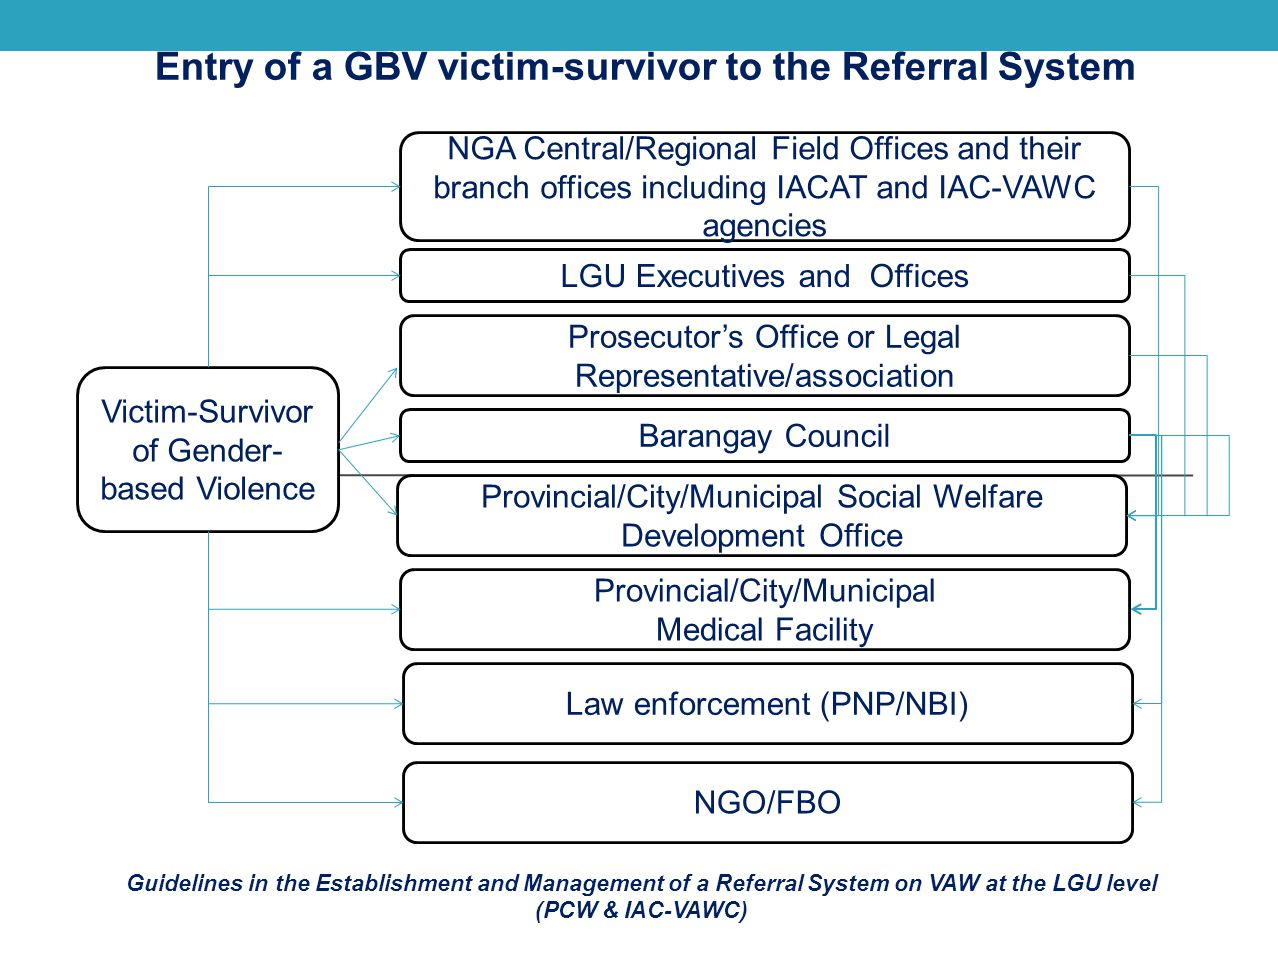 Entry of a GBV victim-survivor to the Referral System